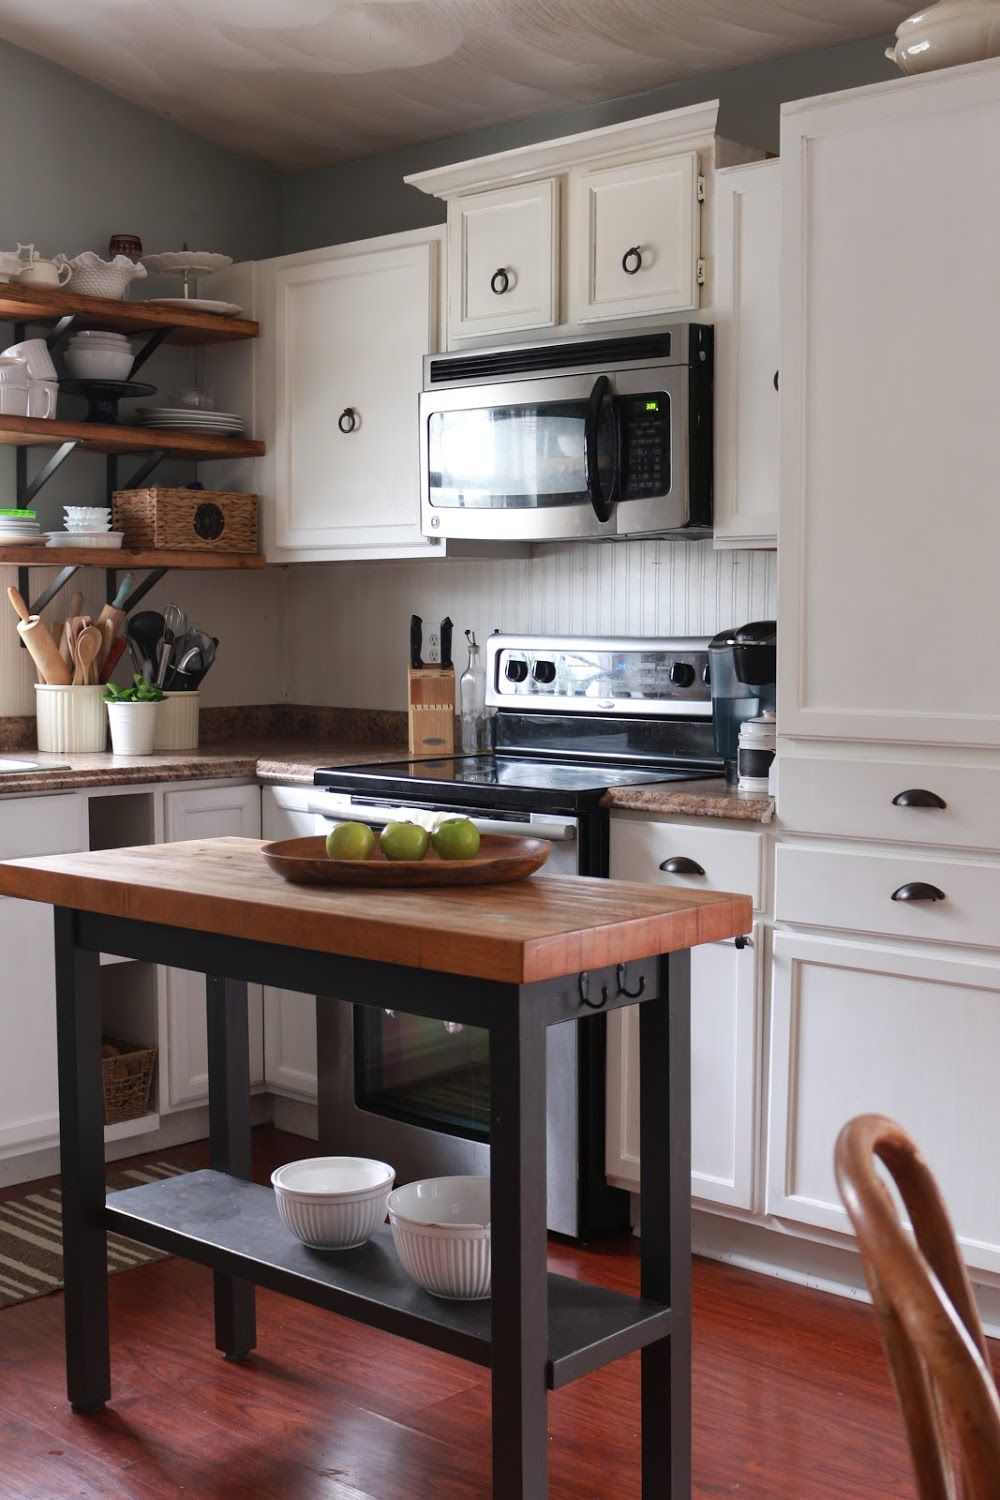 My Diy Kitchen How I Built A Rangehood Over An Existing Cabinet Made By Carli Kitchen Remodel Kitchen Style Kitchen Renovation